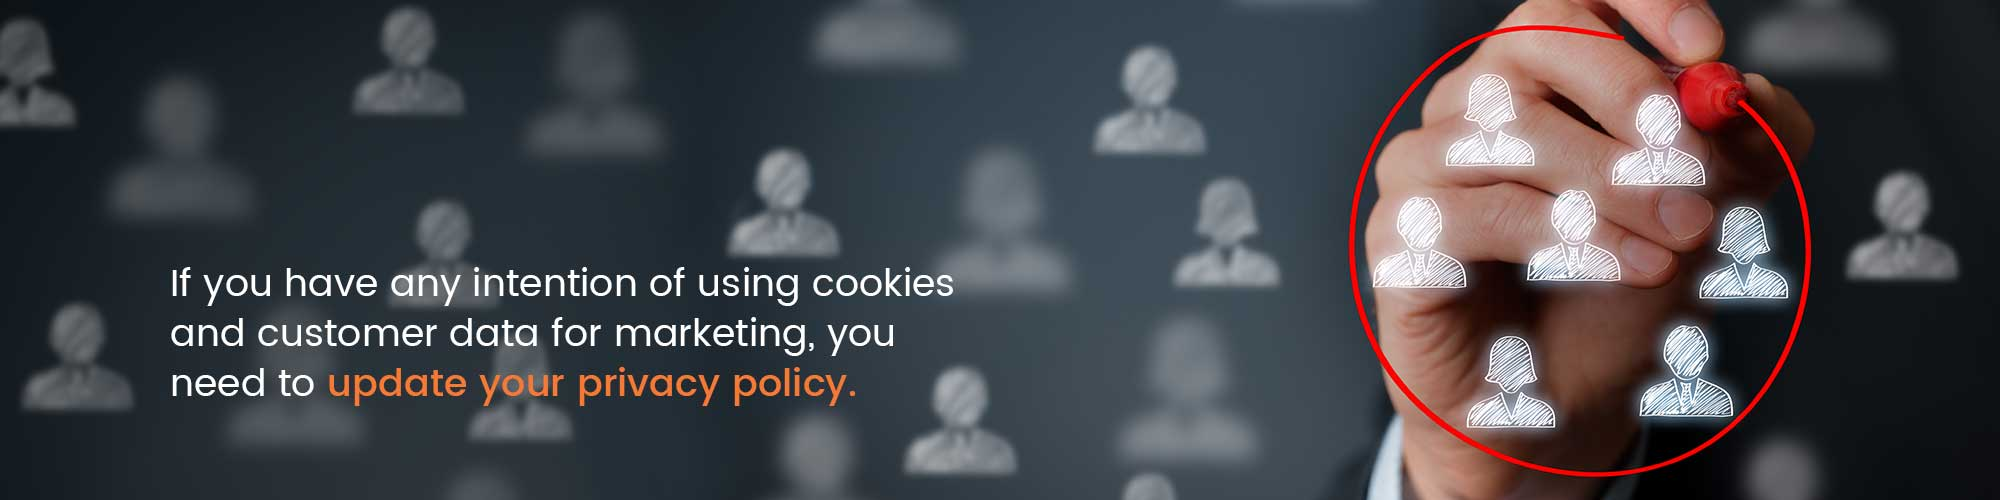 If you have any intention of using cookies and customer data for marketing, you need to update your privacy policy.